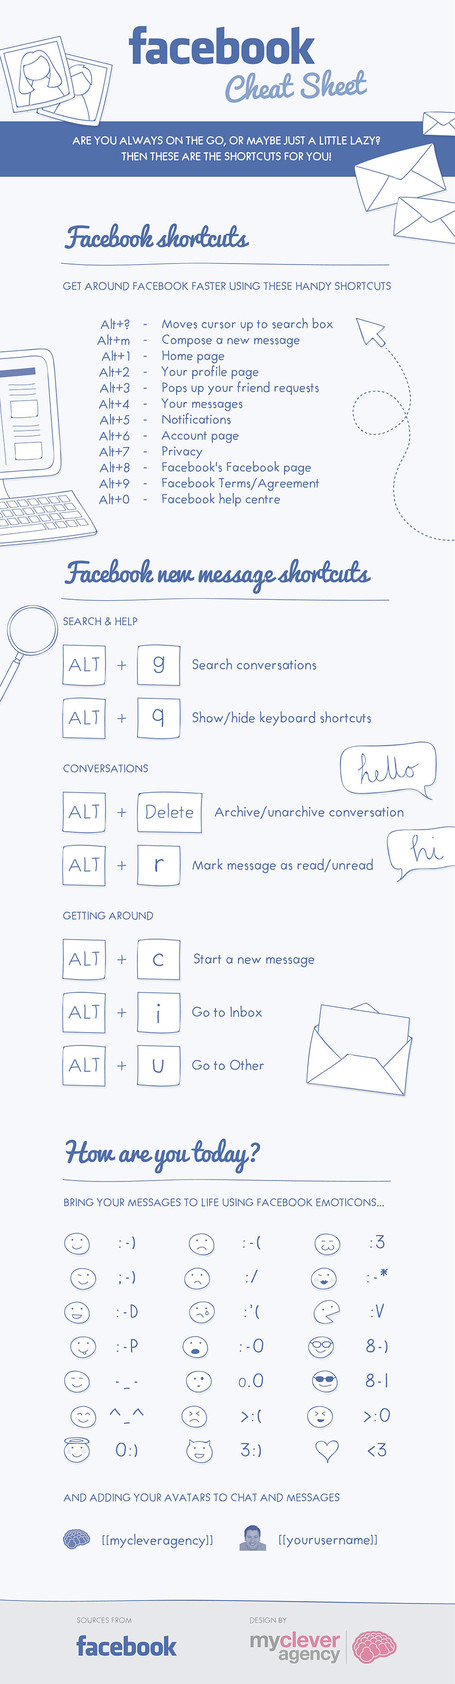 Facebook Cheat Sheet [INFOGRAPHIC] | EPIC Infographic | Scoop.it